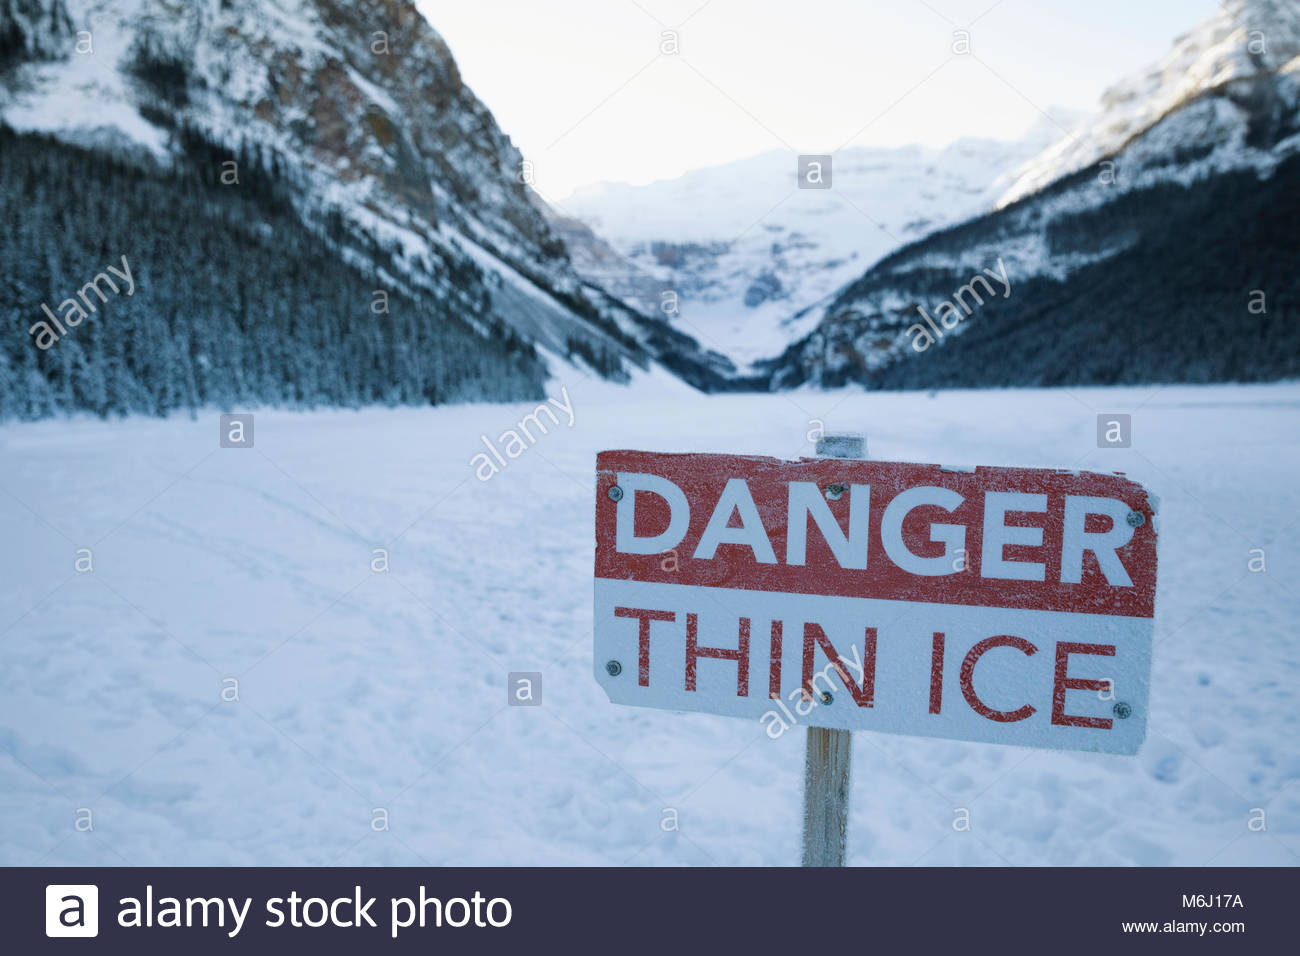 Danger Thin Ice sign on snowy mountain lake - Stock Image